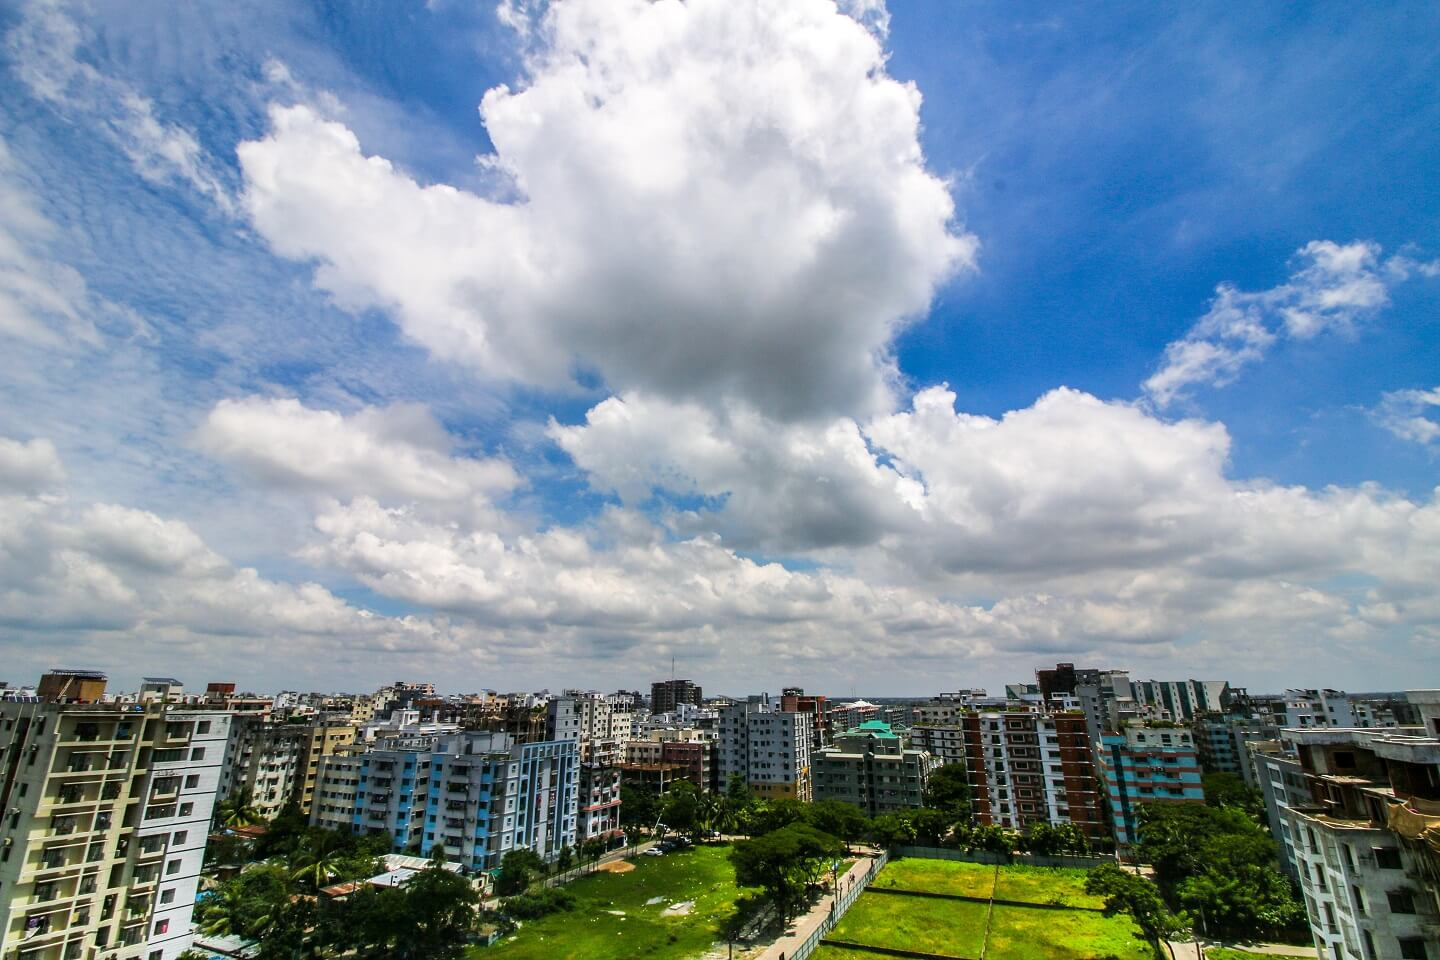 Compared to the benefits in Bashundhara R/A, the price of flat in the area is still low